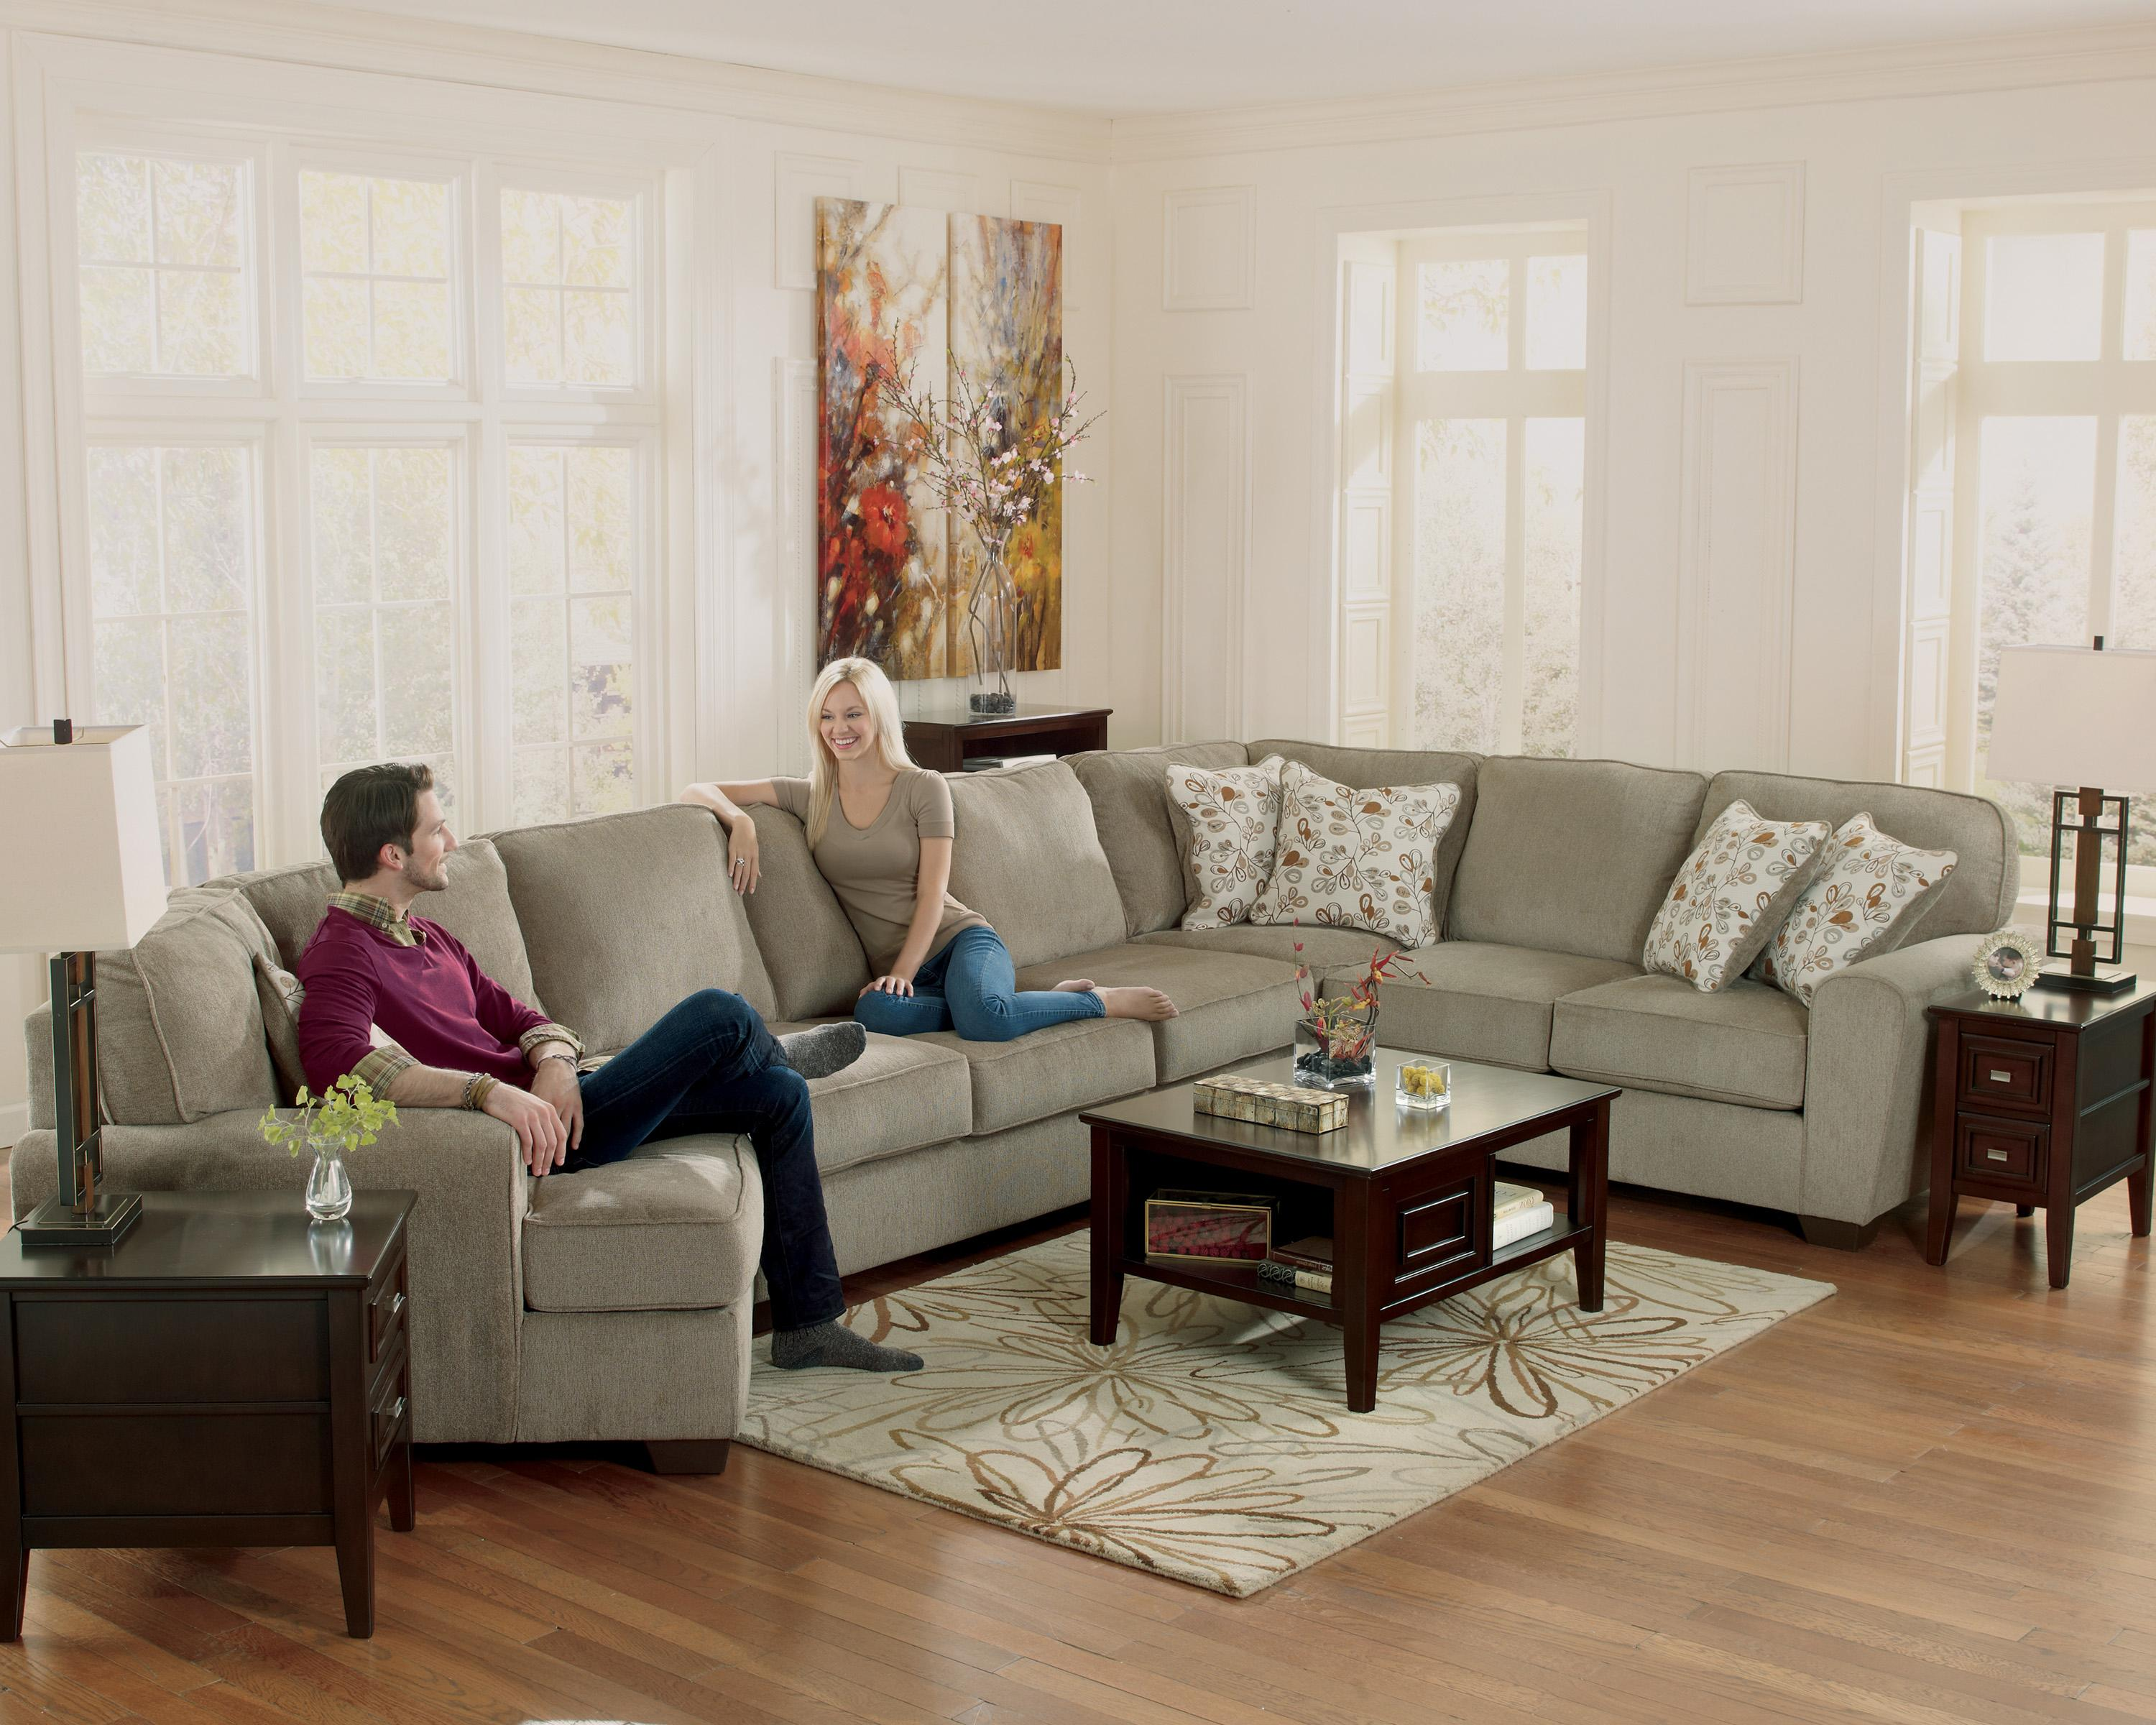 Ashley Furniture Patola Park Patina 4 Piece Sectional With Left Cuddler Furniture And